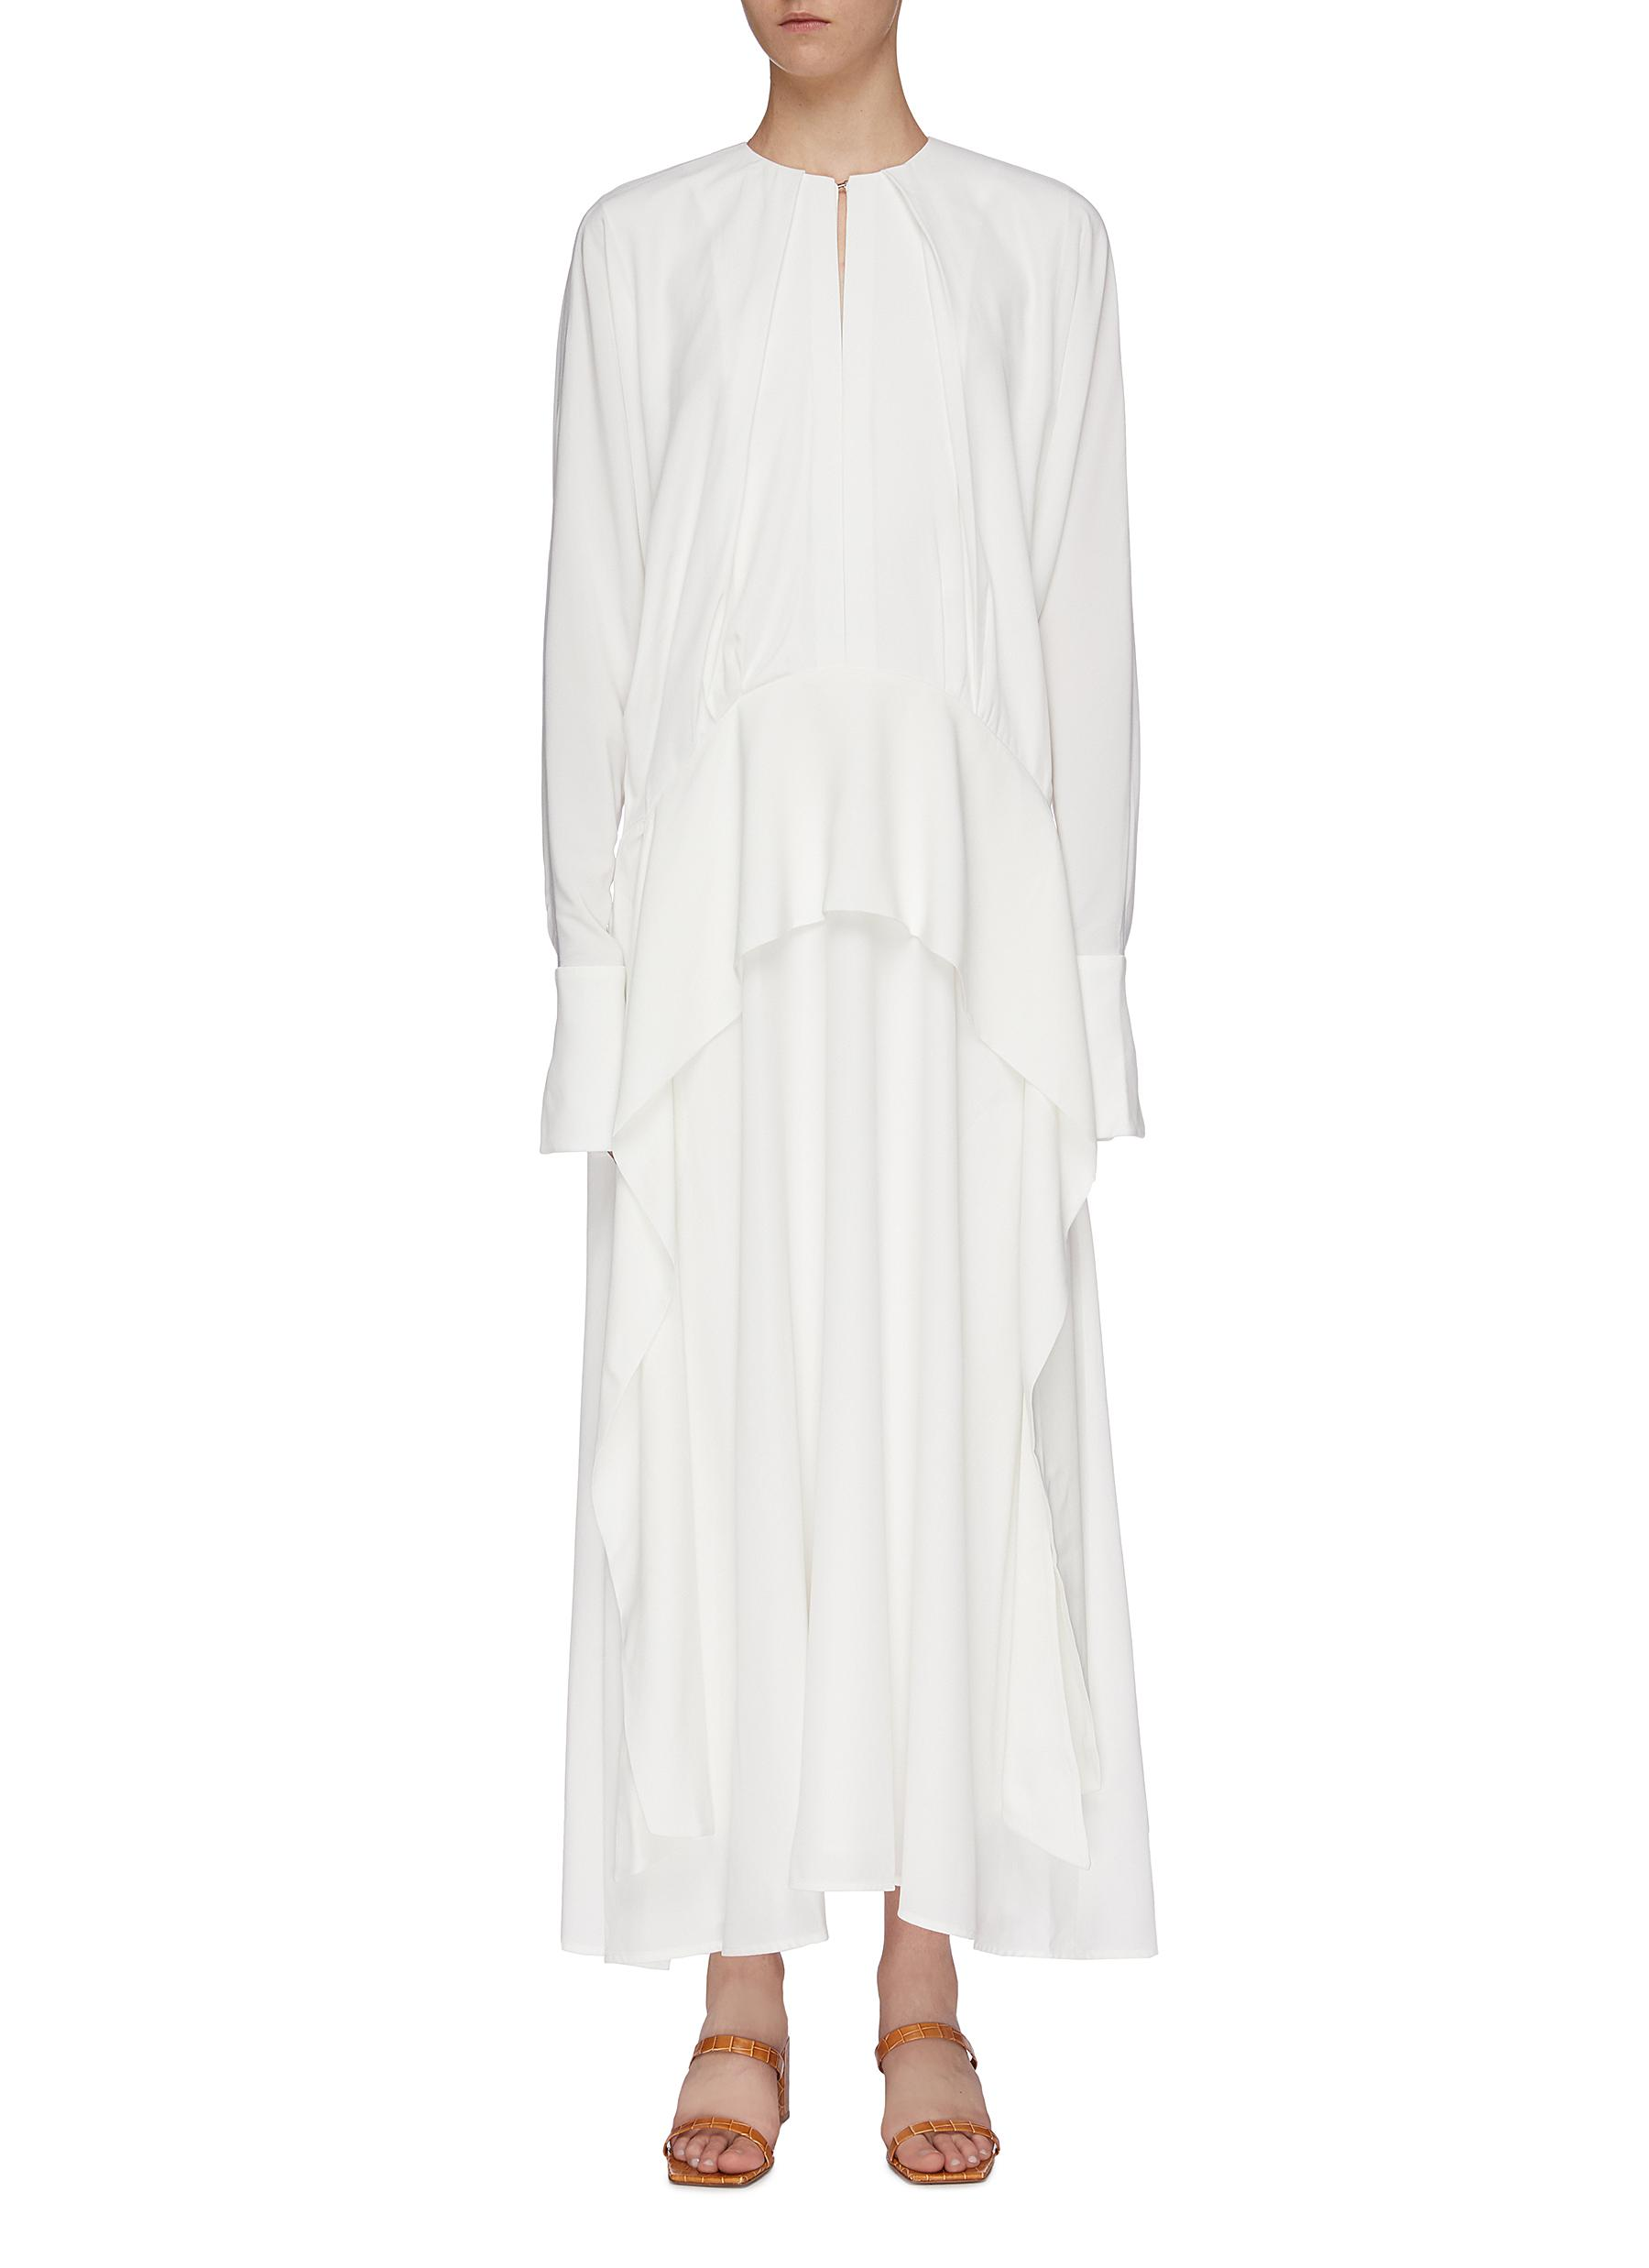 Keyhole front oversized drape crepe dress by Victoria, Victoria Beckham